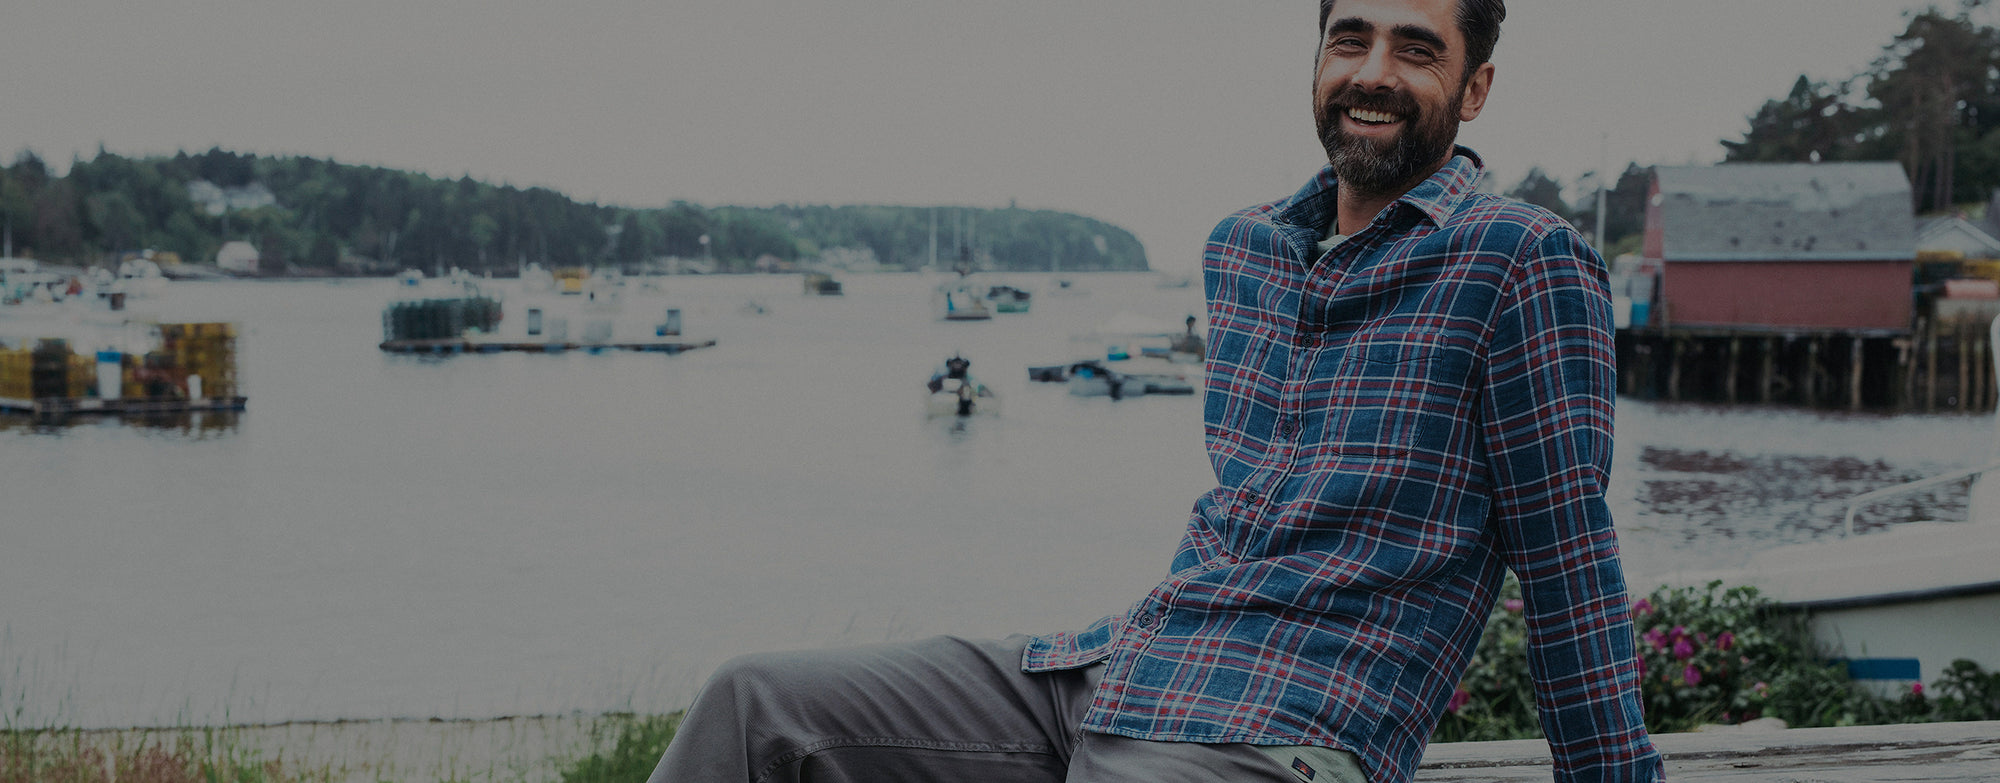 Man smiling in a reversible plaid shirt on the coast.